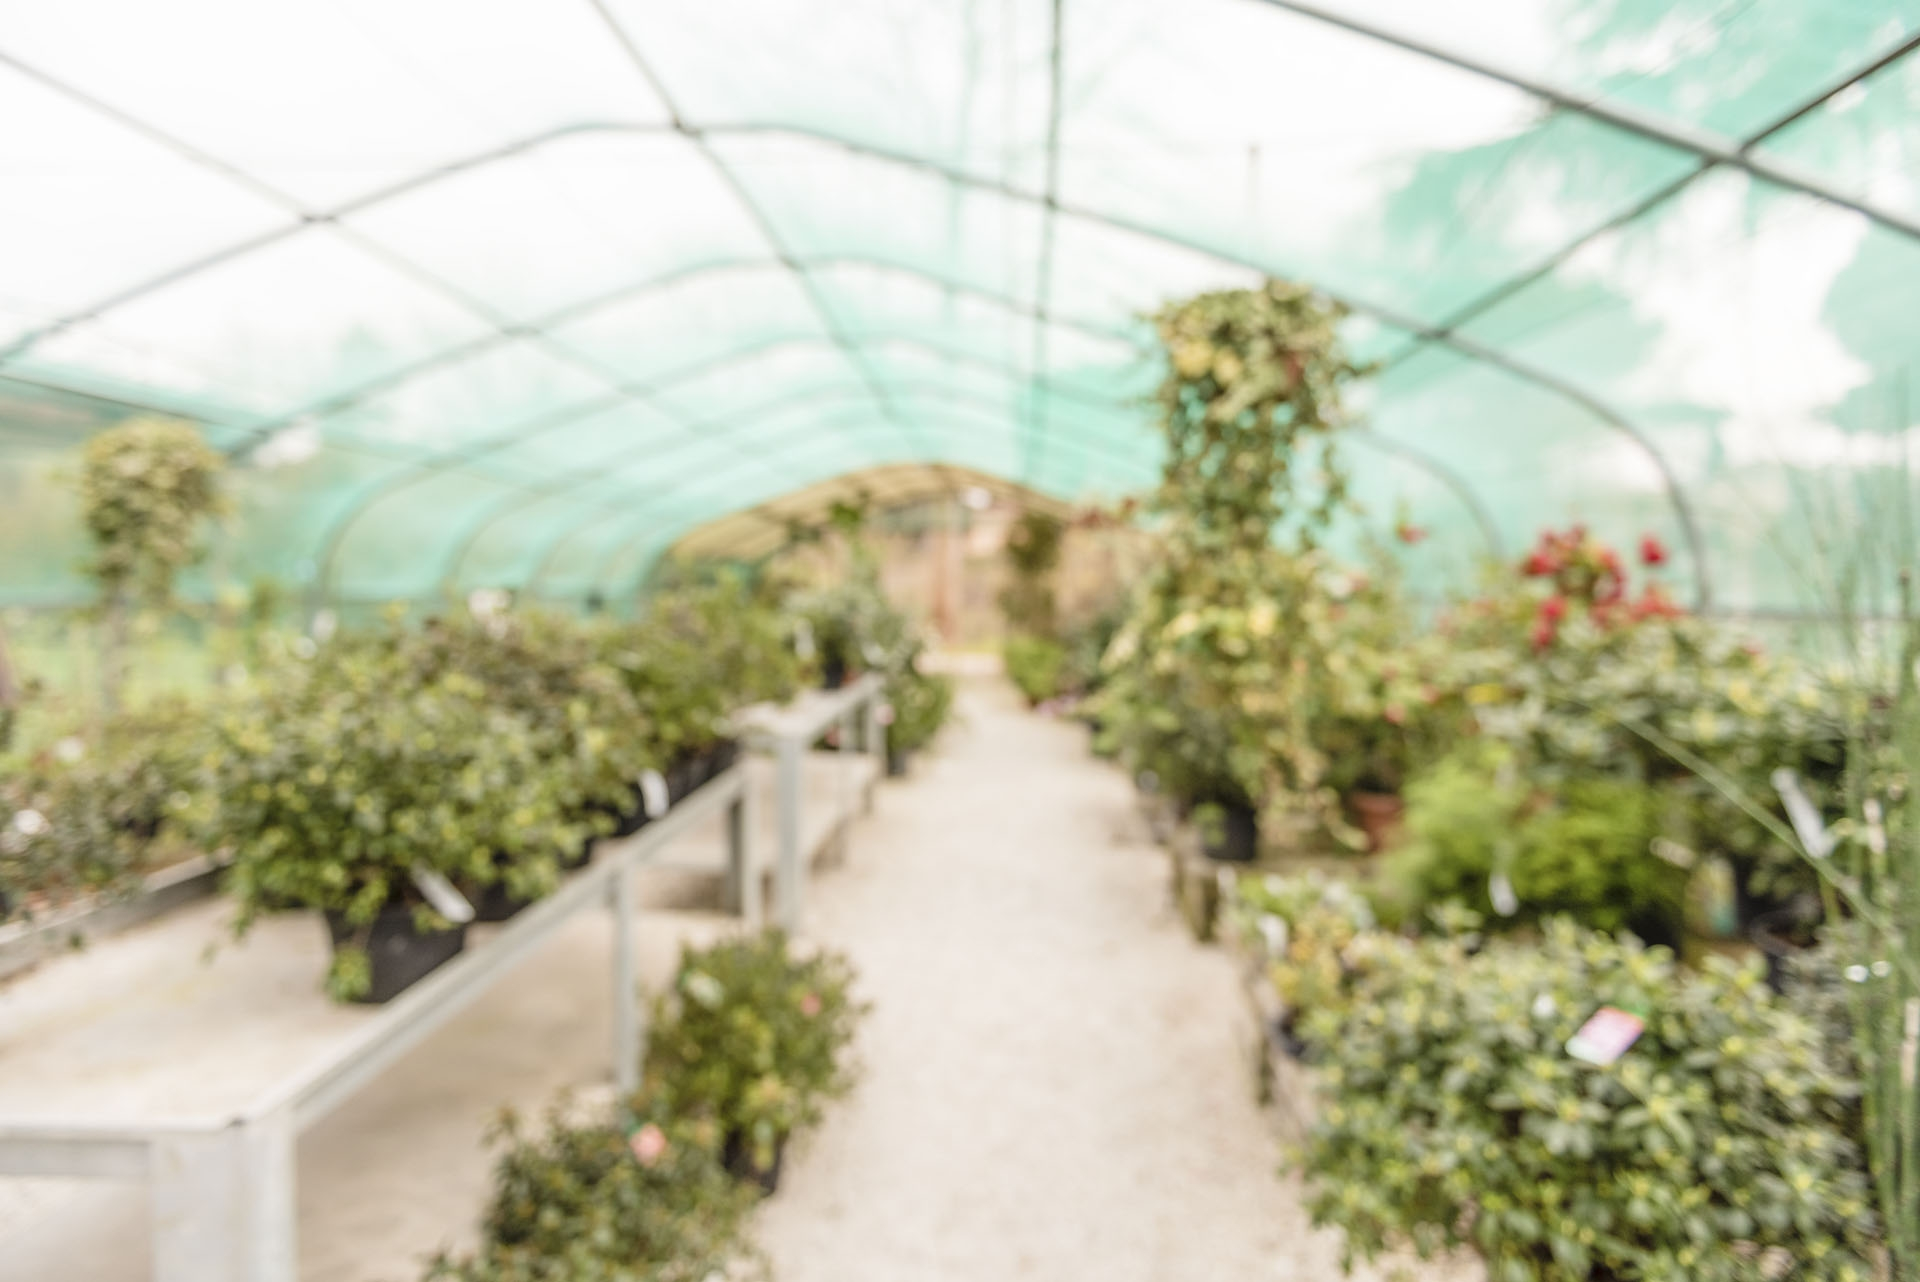 Defocused background with interiors of a greenhouse